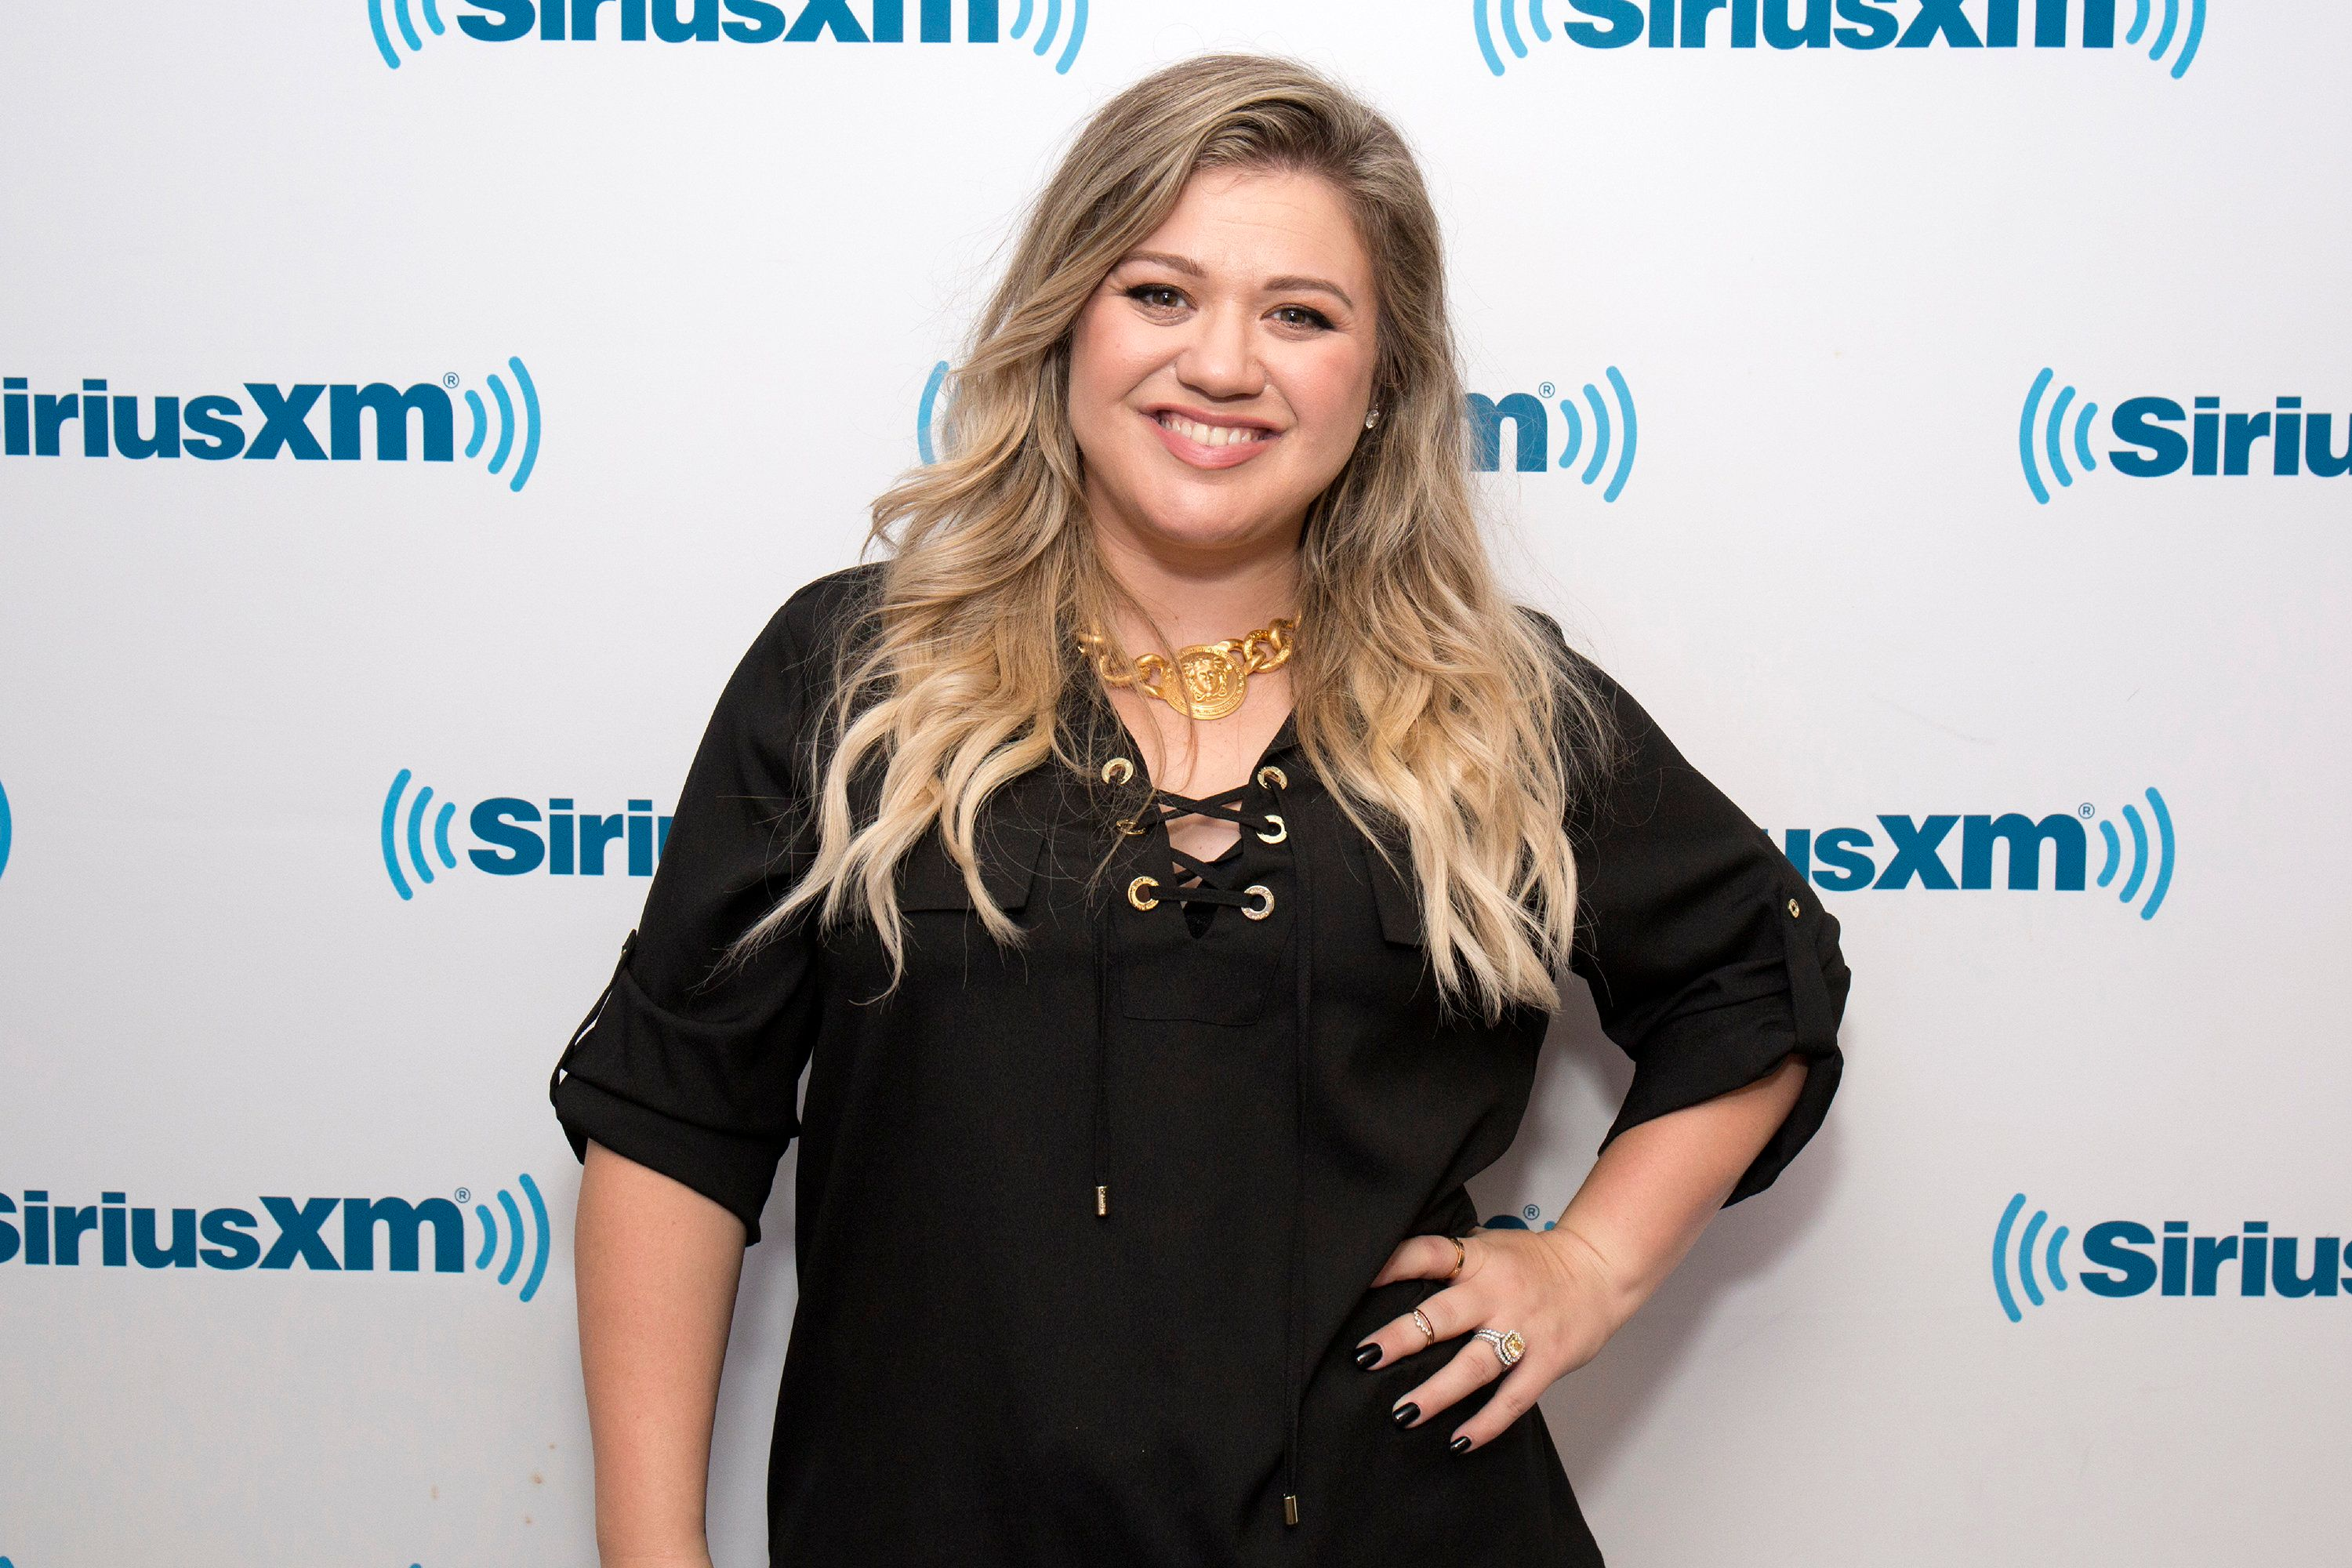 Kelly Clarkson Opens Up About Her